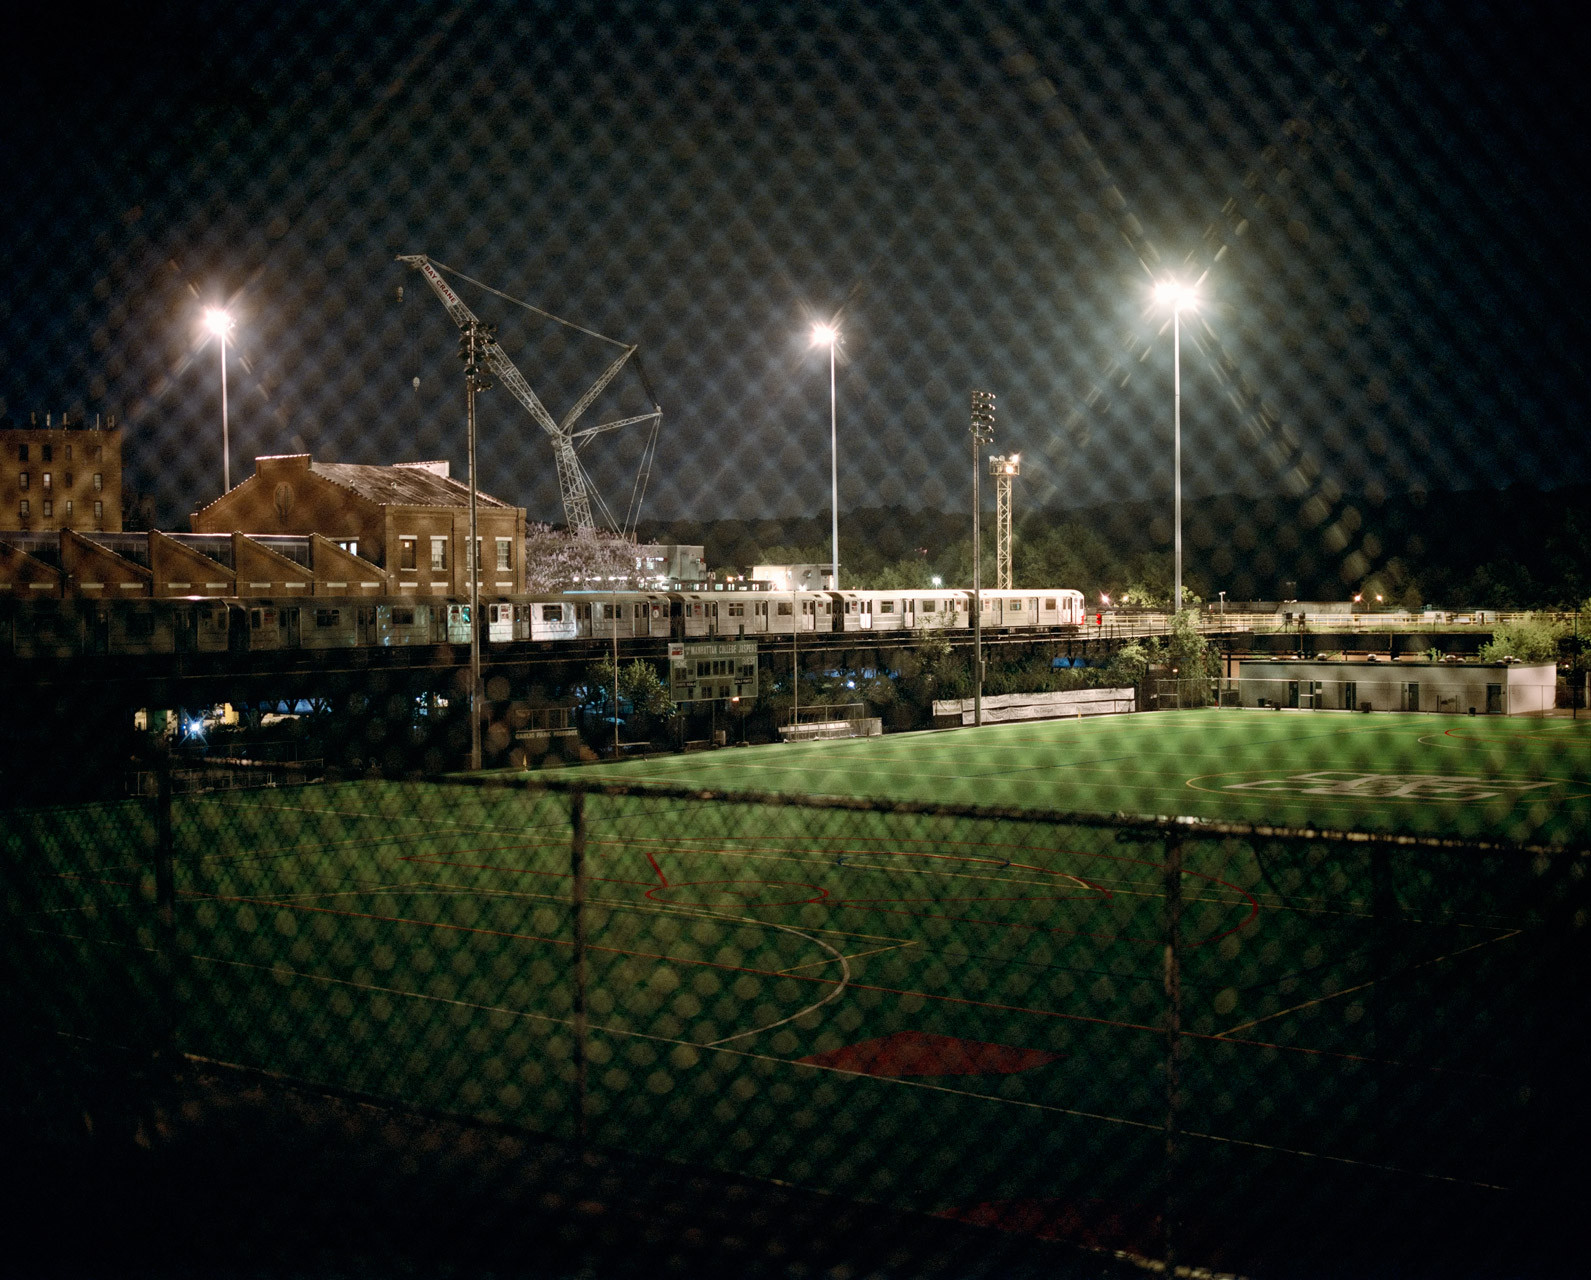 Timo_Stammberger_New_York_Bronx_Underground_Subway_Night_Citylights_Chain_Link_Fence